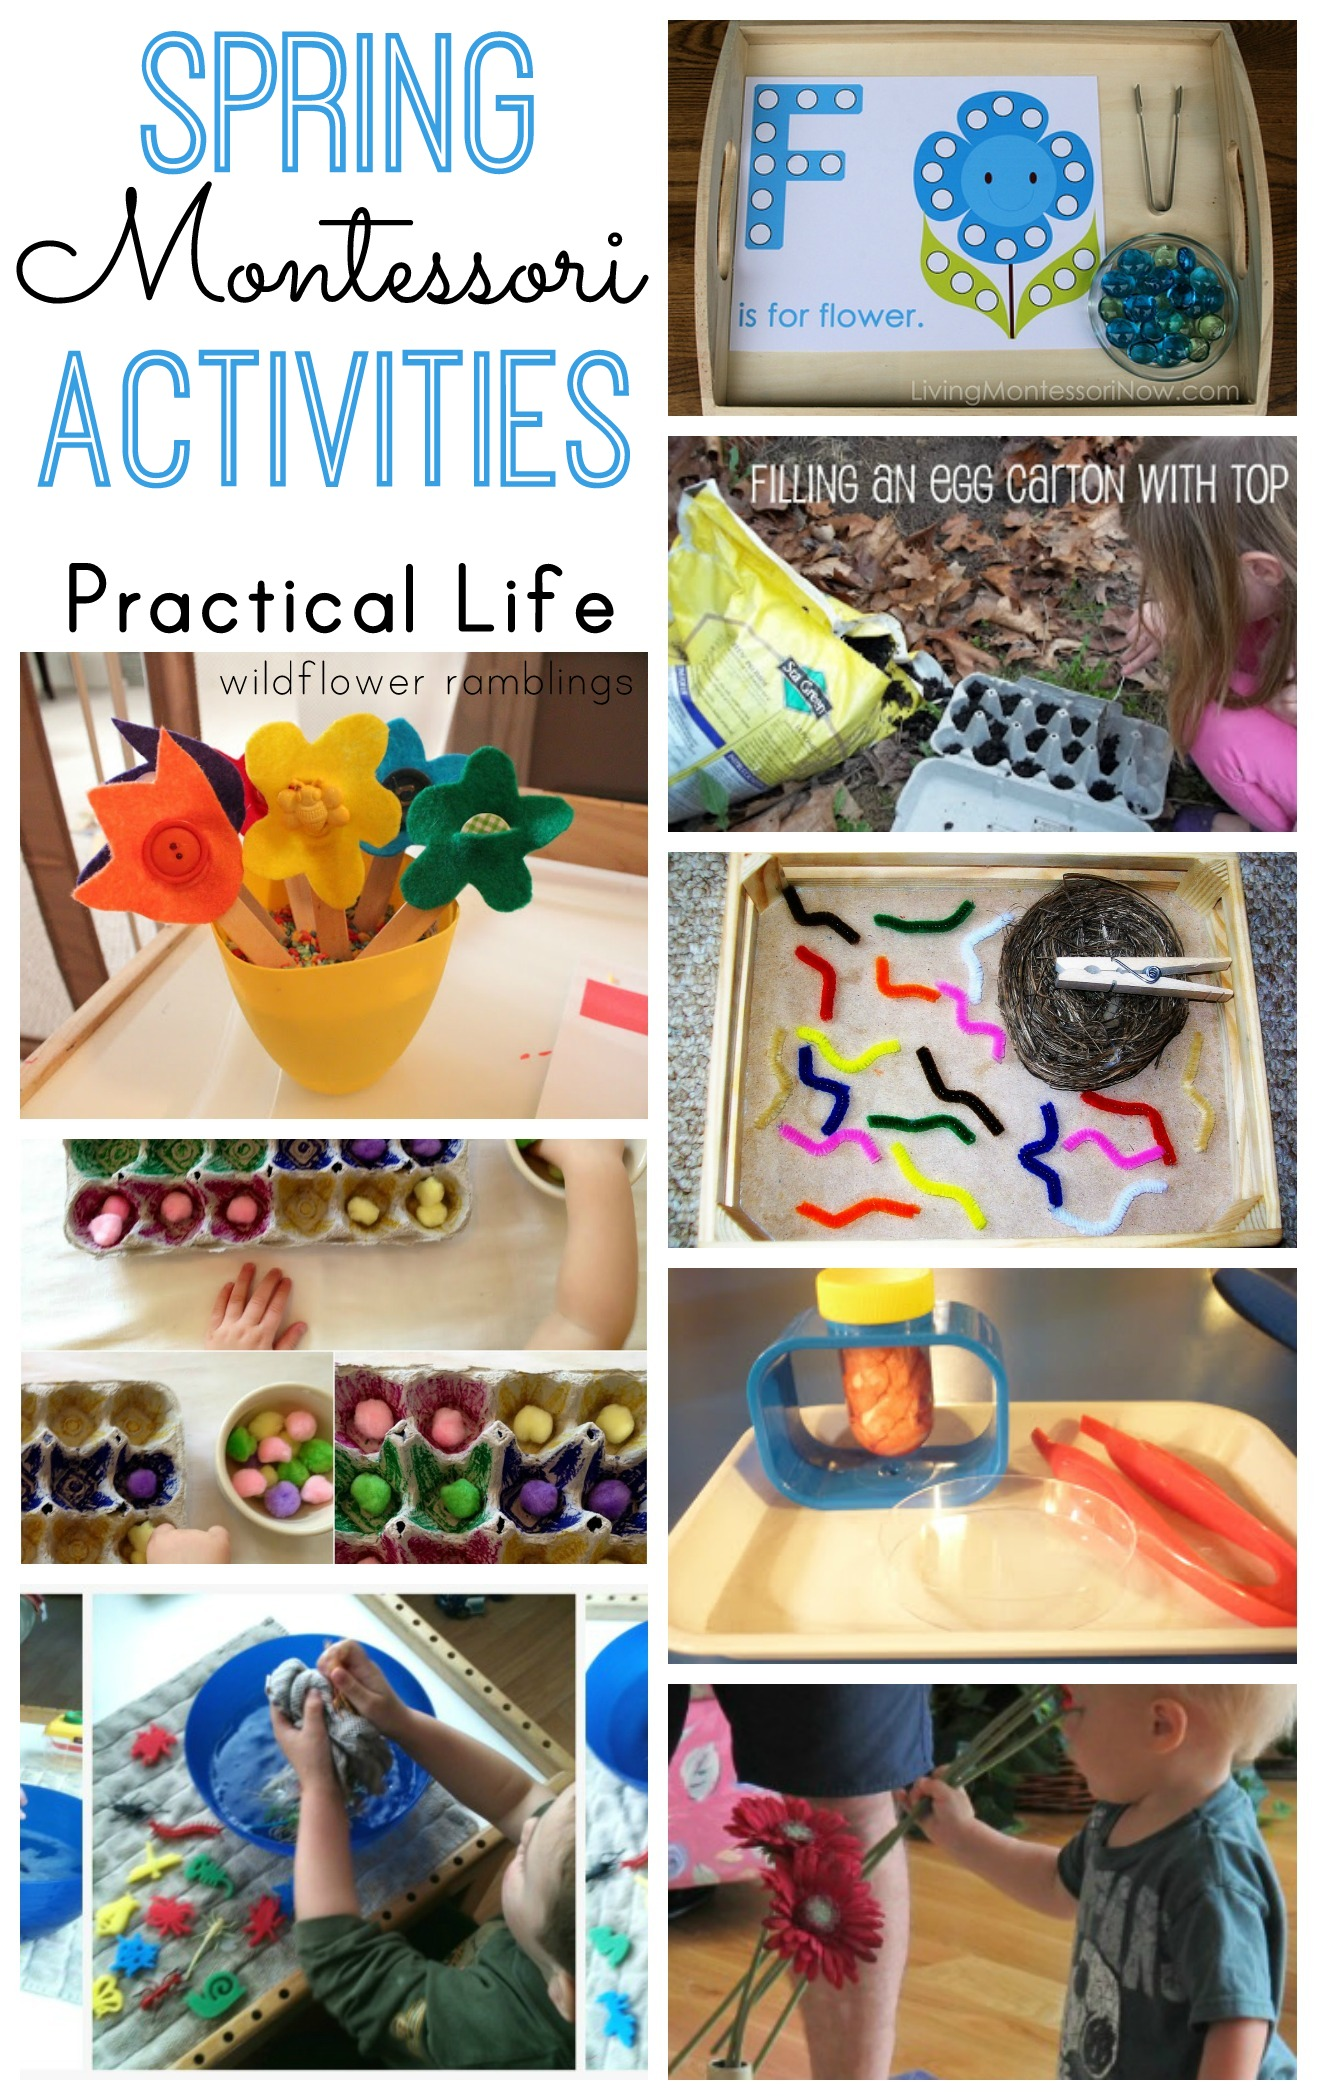 practical craft ideas montessori activities wildflower ramblings 2735